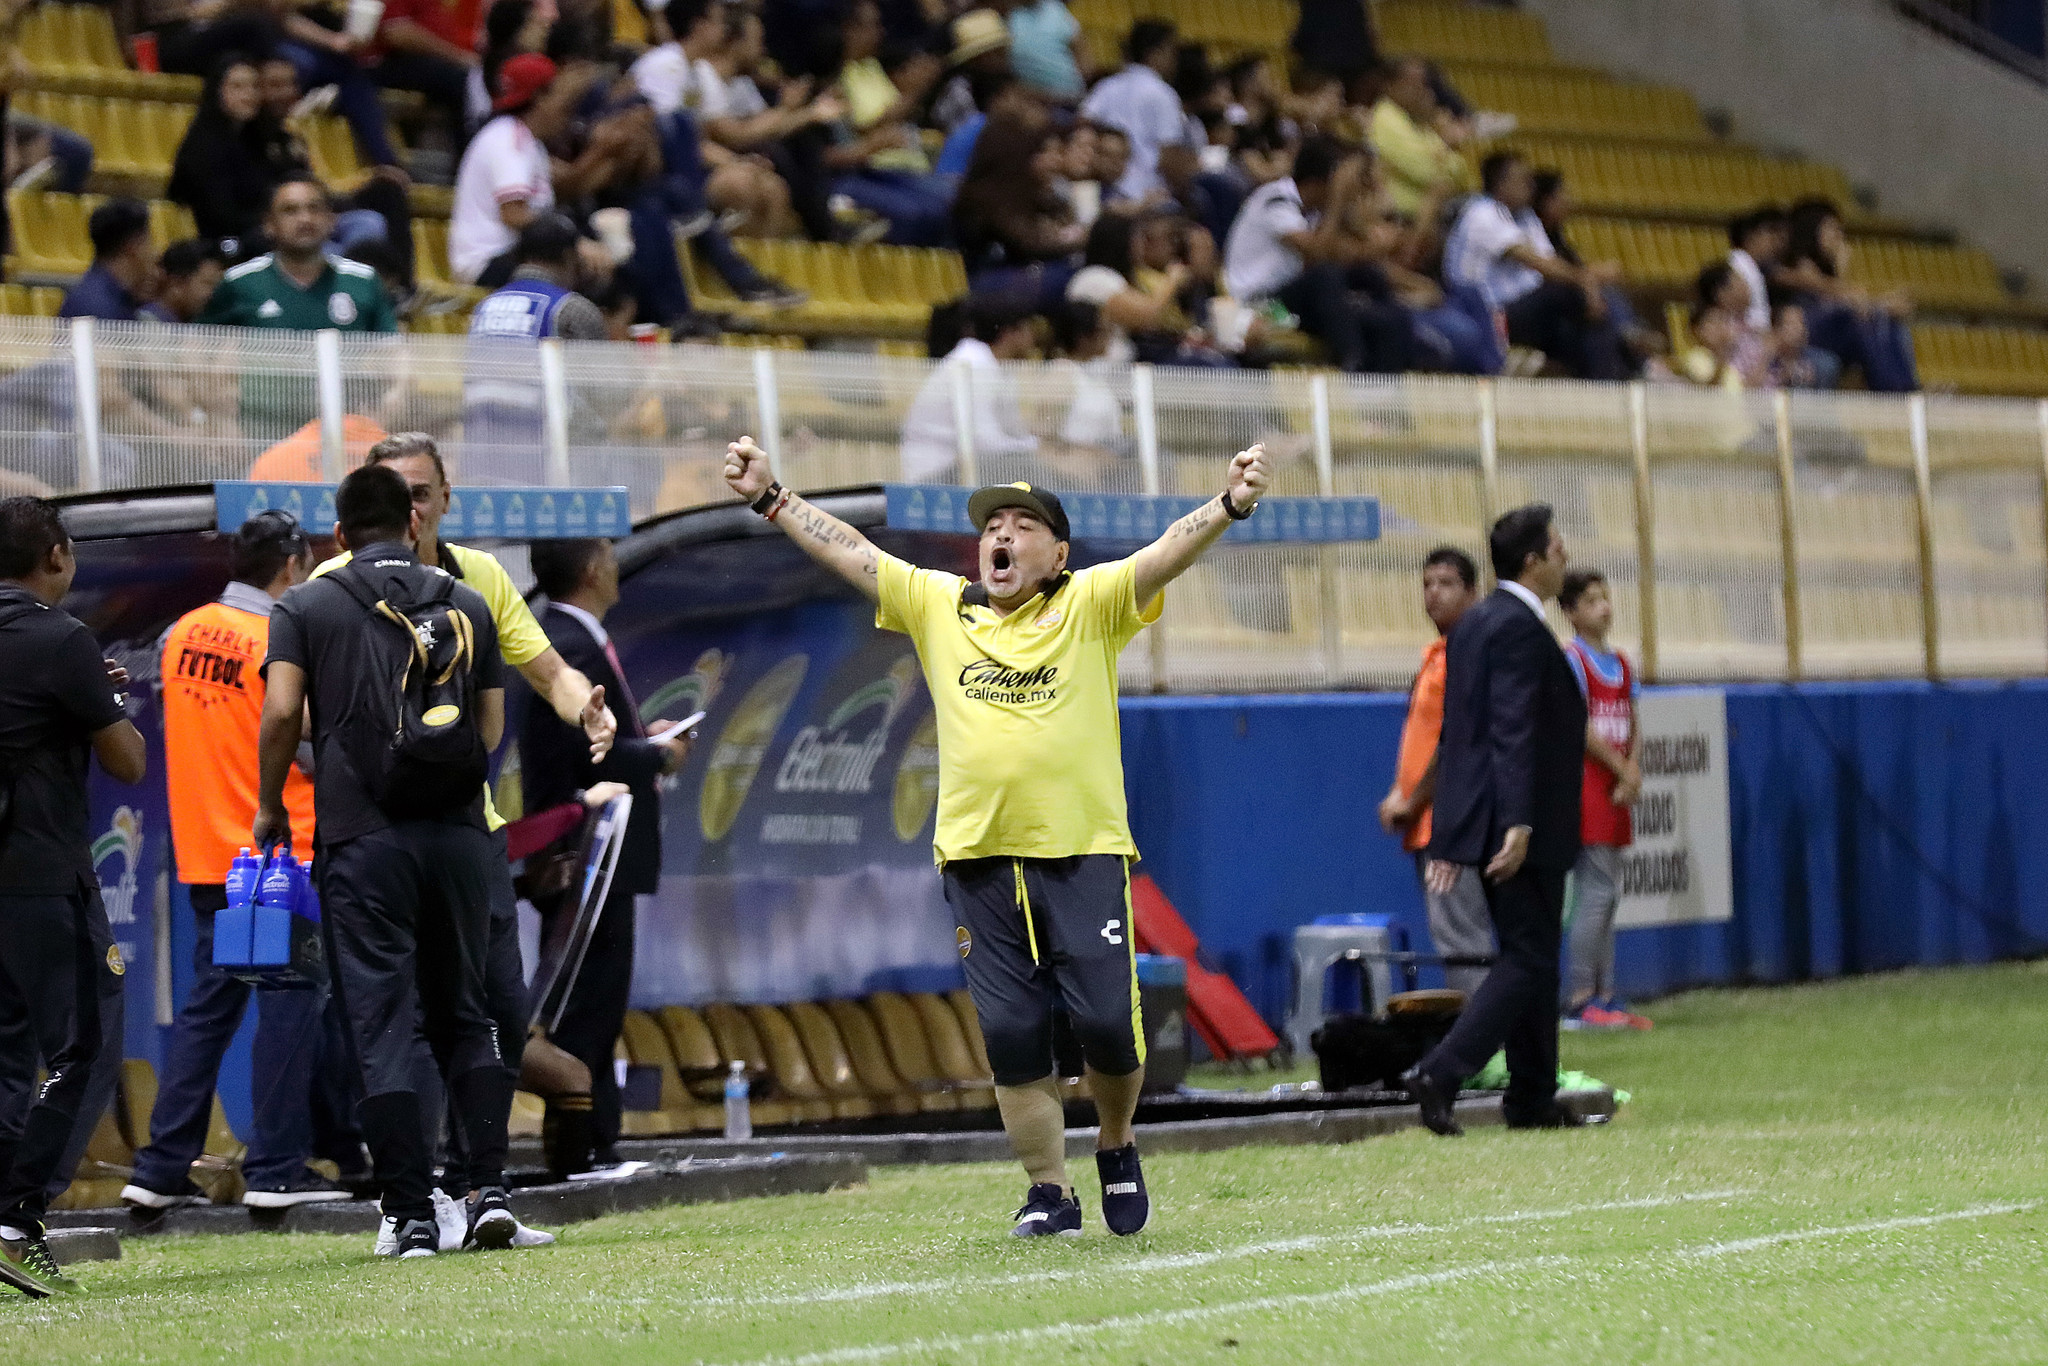 CULIACÁN, SINALOA — SATURDAY, OCTOBER 27, 2018: Diego Maradona, coach of Dorados of Sinaloa, raises